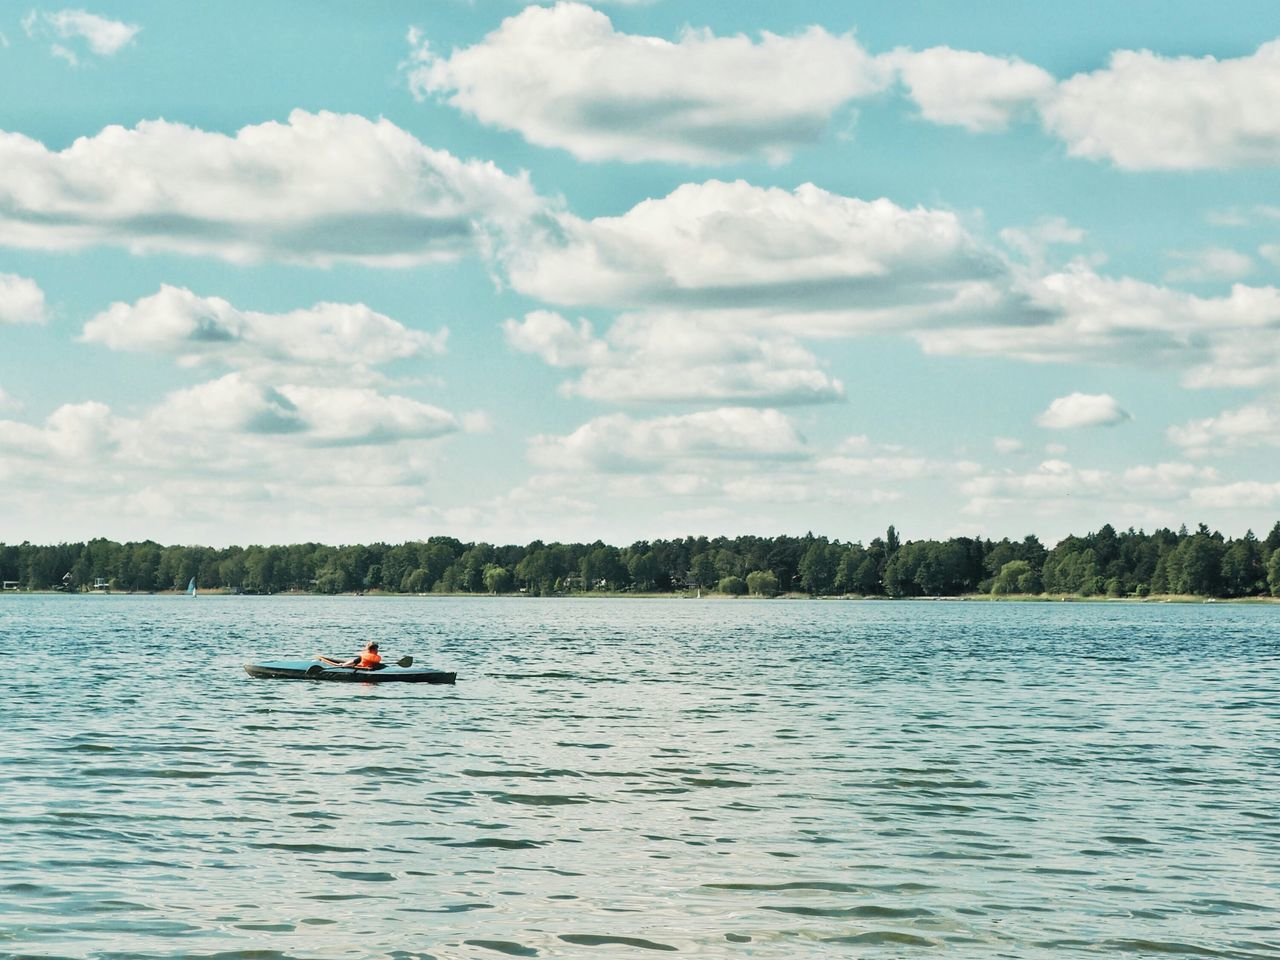 Sea Alone In Nature Water Outdoors Cloud - Sky Nature Tranquility Buoy Day Scenics Beach Sky Swimming Beauty In Nature One Person Canoeing Canoe Lake Alone On The Water One Man Only Brandenburg Wandlitzsee Wandlitz See Kanu